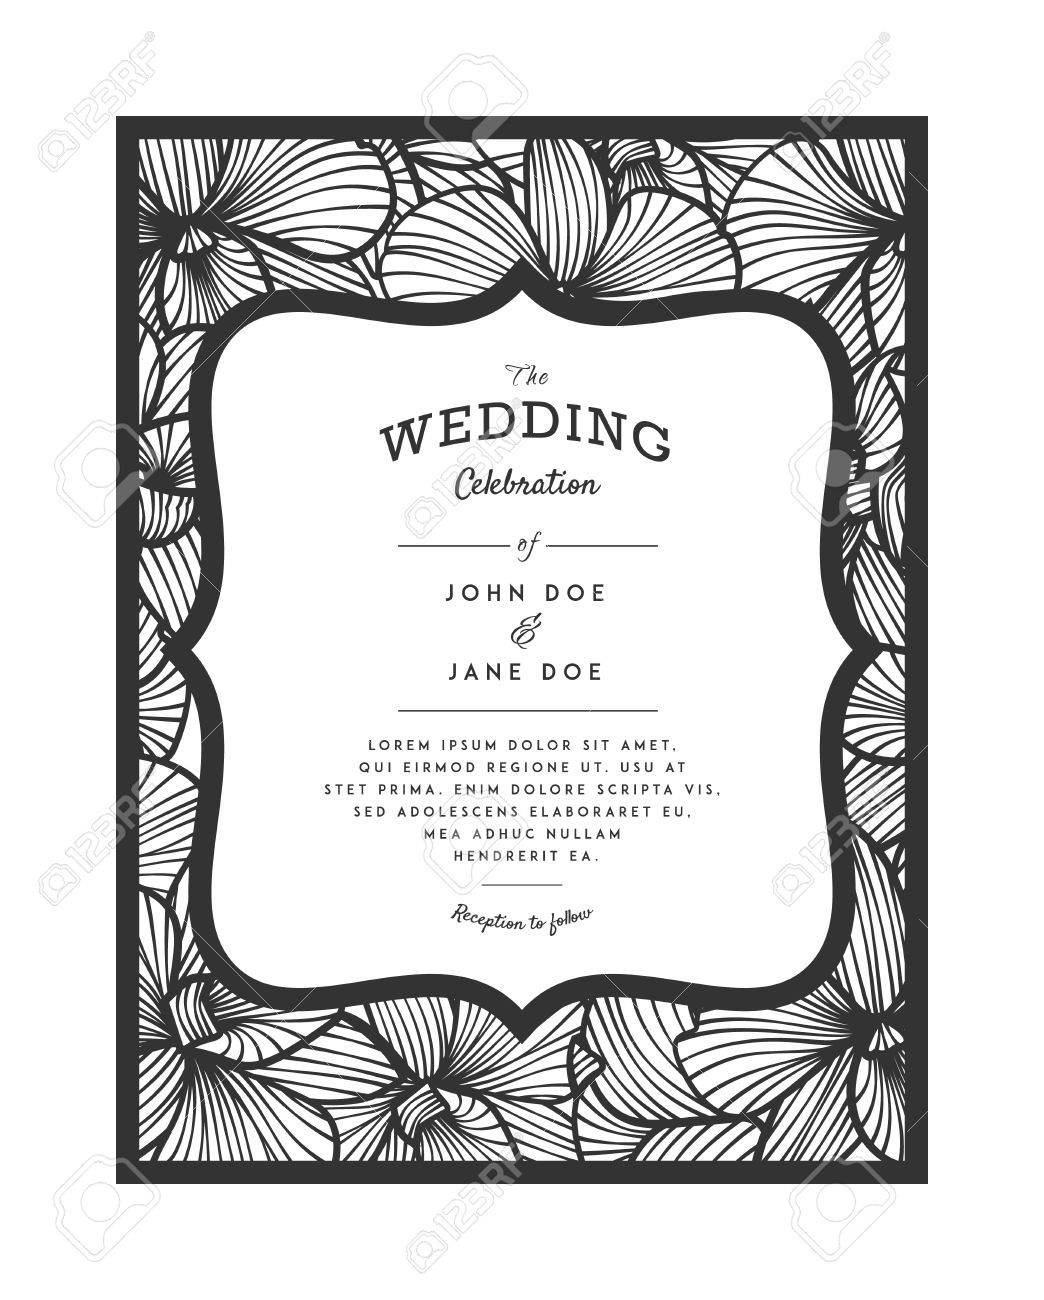 Laser cut vector wedding invitation with orchid flowers for laser cut vector wedding invitation with orchid flowers for decorative panel perfect for wedding or stopboris Images